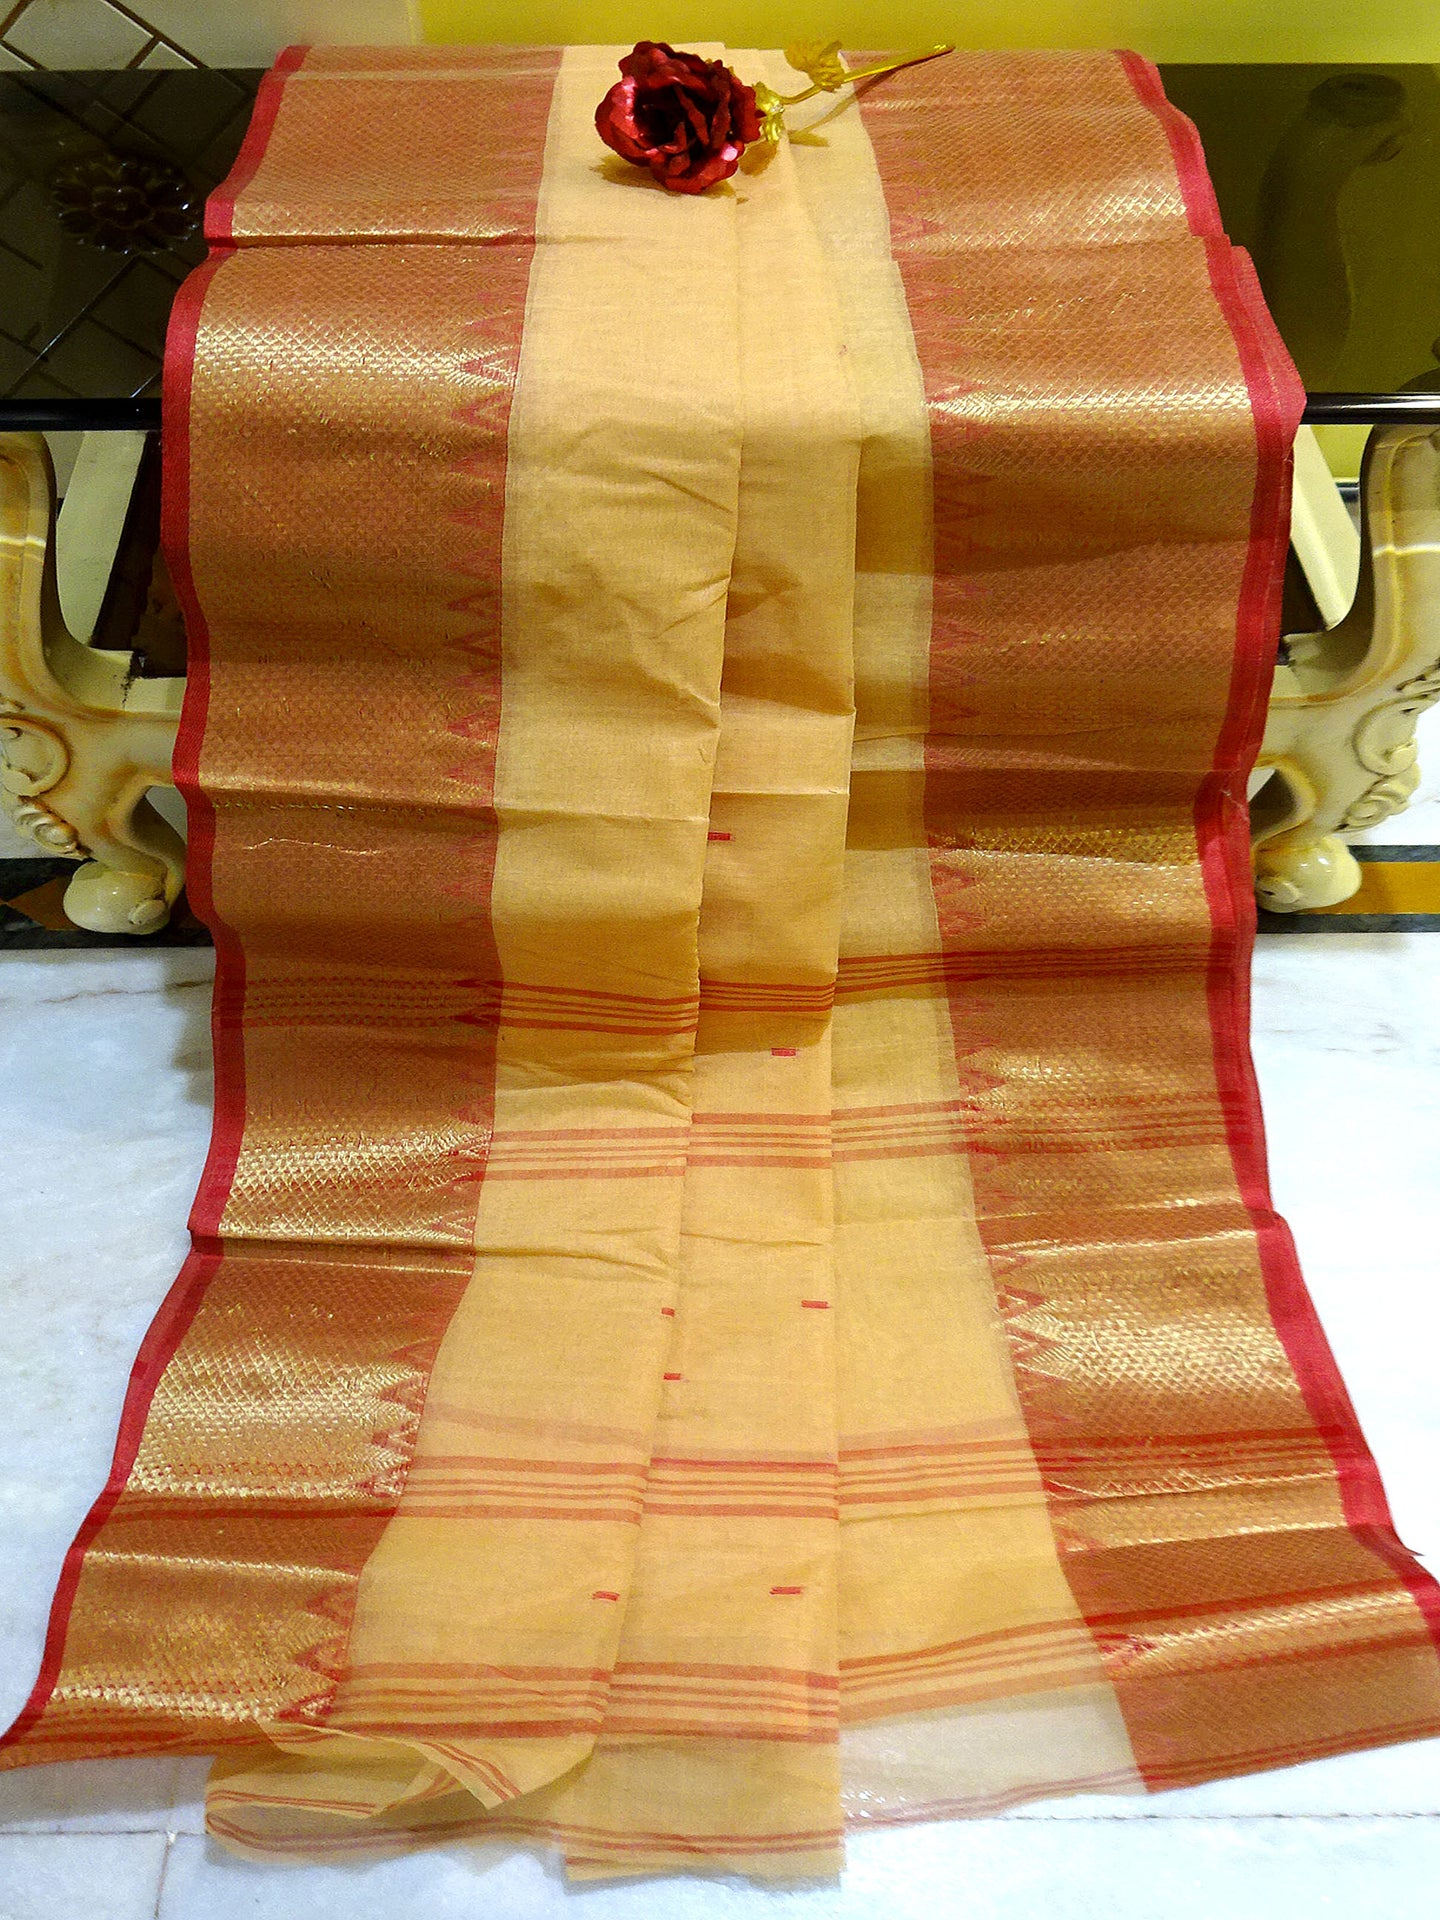 Bengal Handloom Cotton Saree in Cream and Red - Bengal Looms India